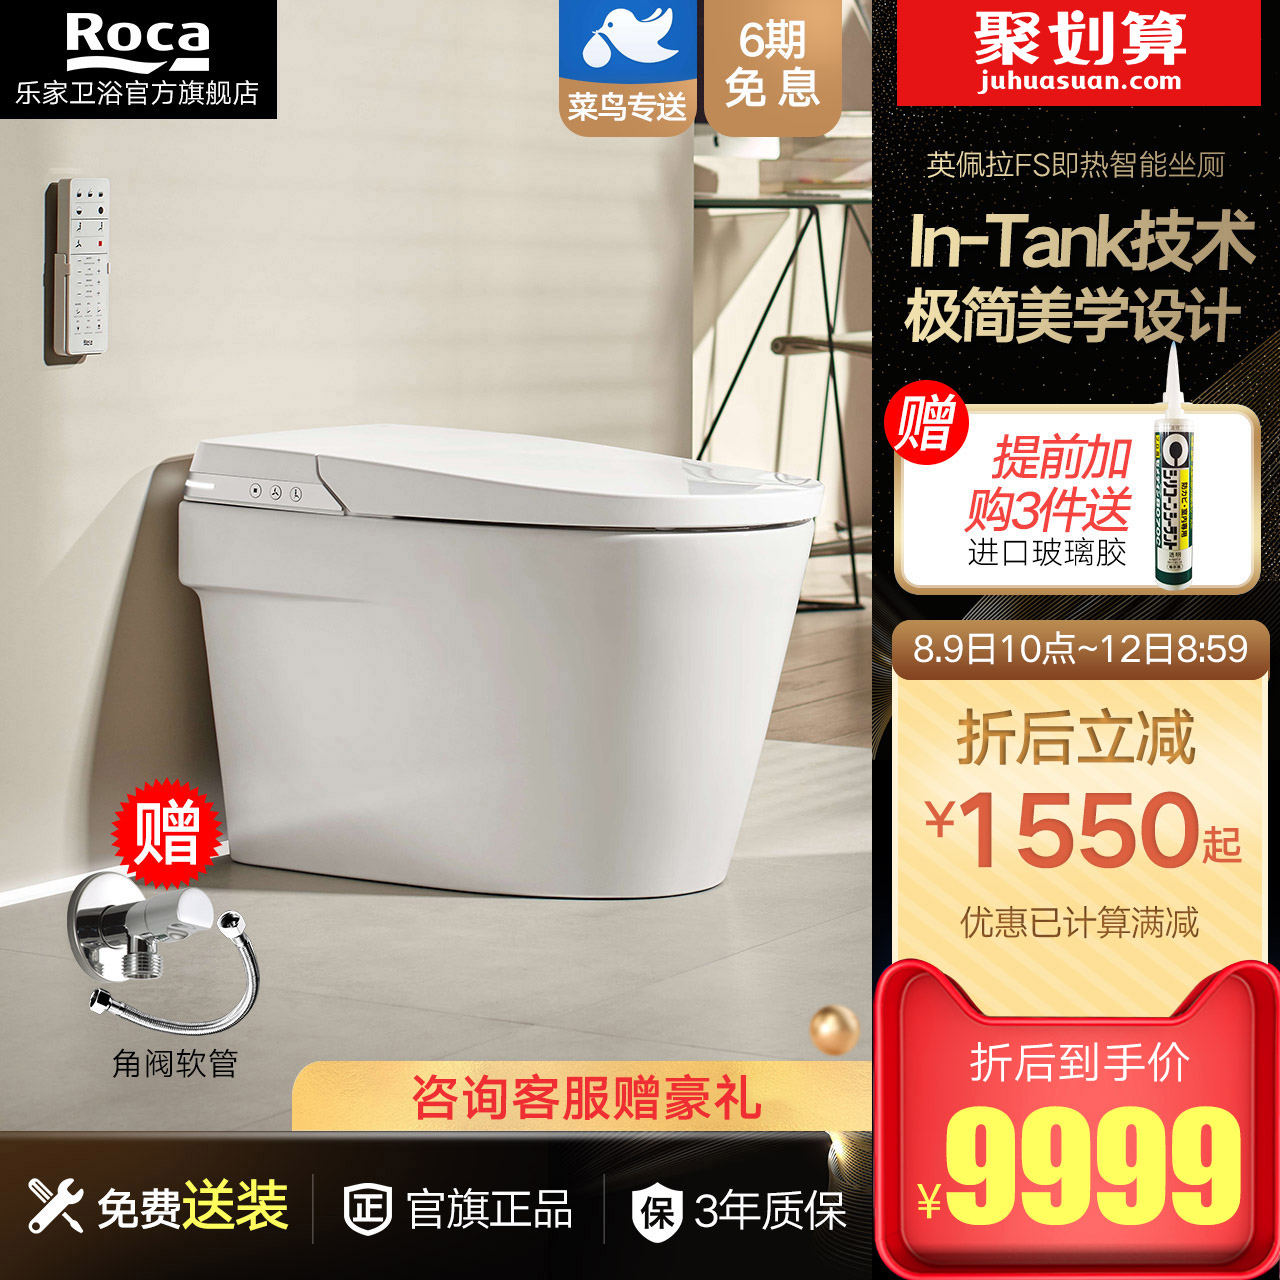 Roca Le jia bathroom all-in-one smart toilet fully automatic, hot-connected automatic flip-top toilet Impera.